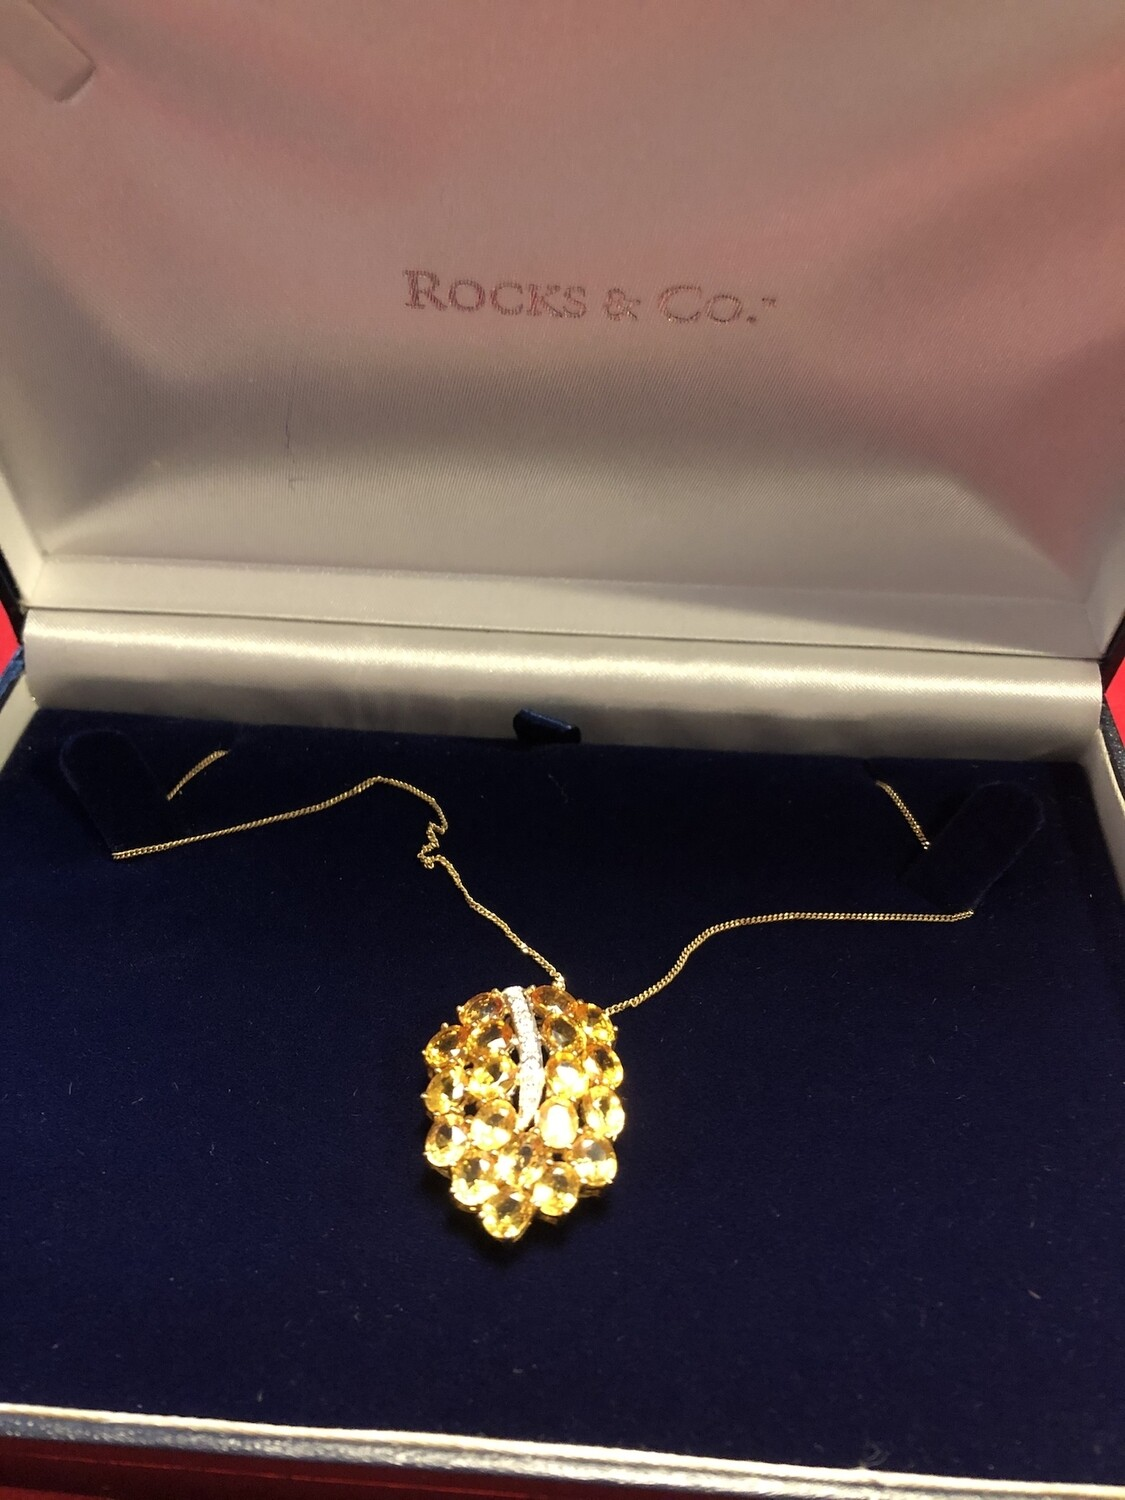 9k Yellow Gold & Diamond Necklace with Yellow Sapphires set in stunning mount